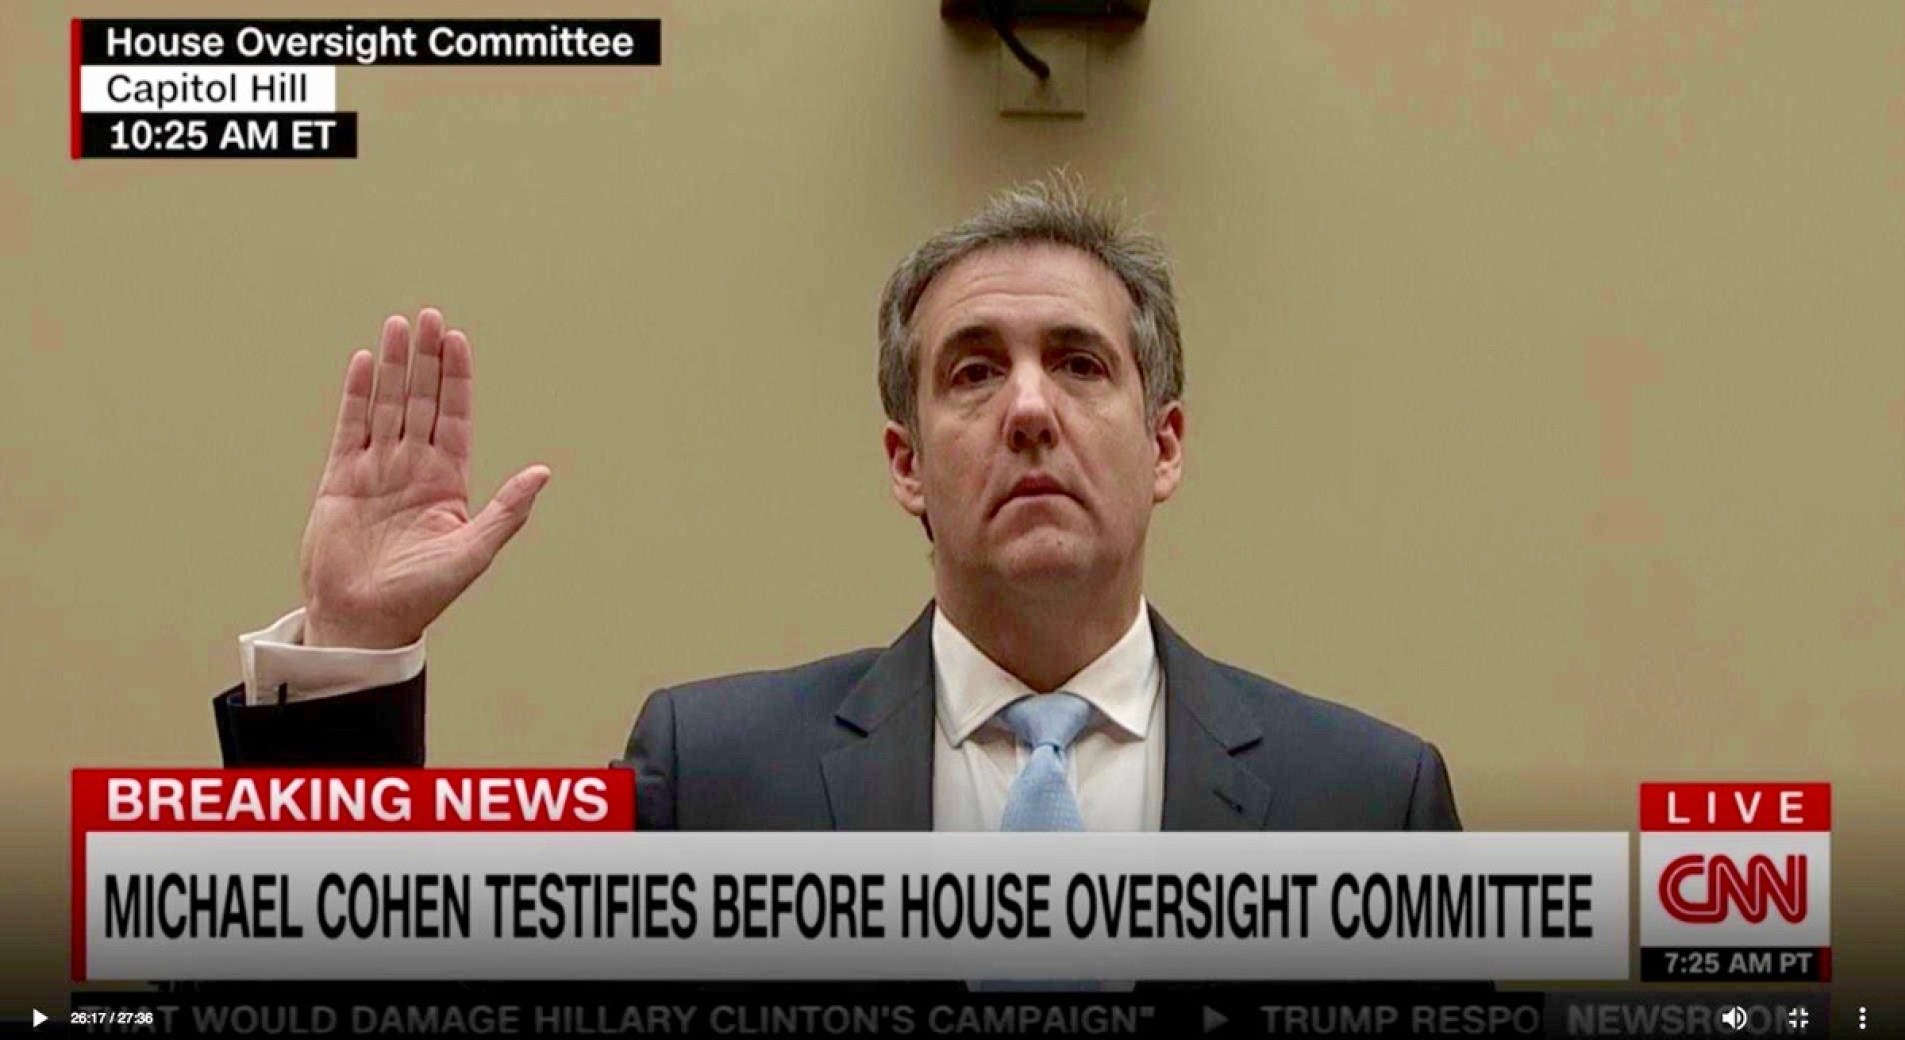 Trump's former personal lawyer Michael Cohen. He was also the former RNC Deputy Finance Chairman and a Trump Organization Executive - February 27, 2019